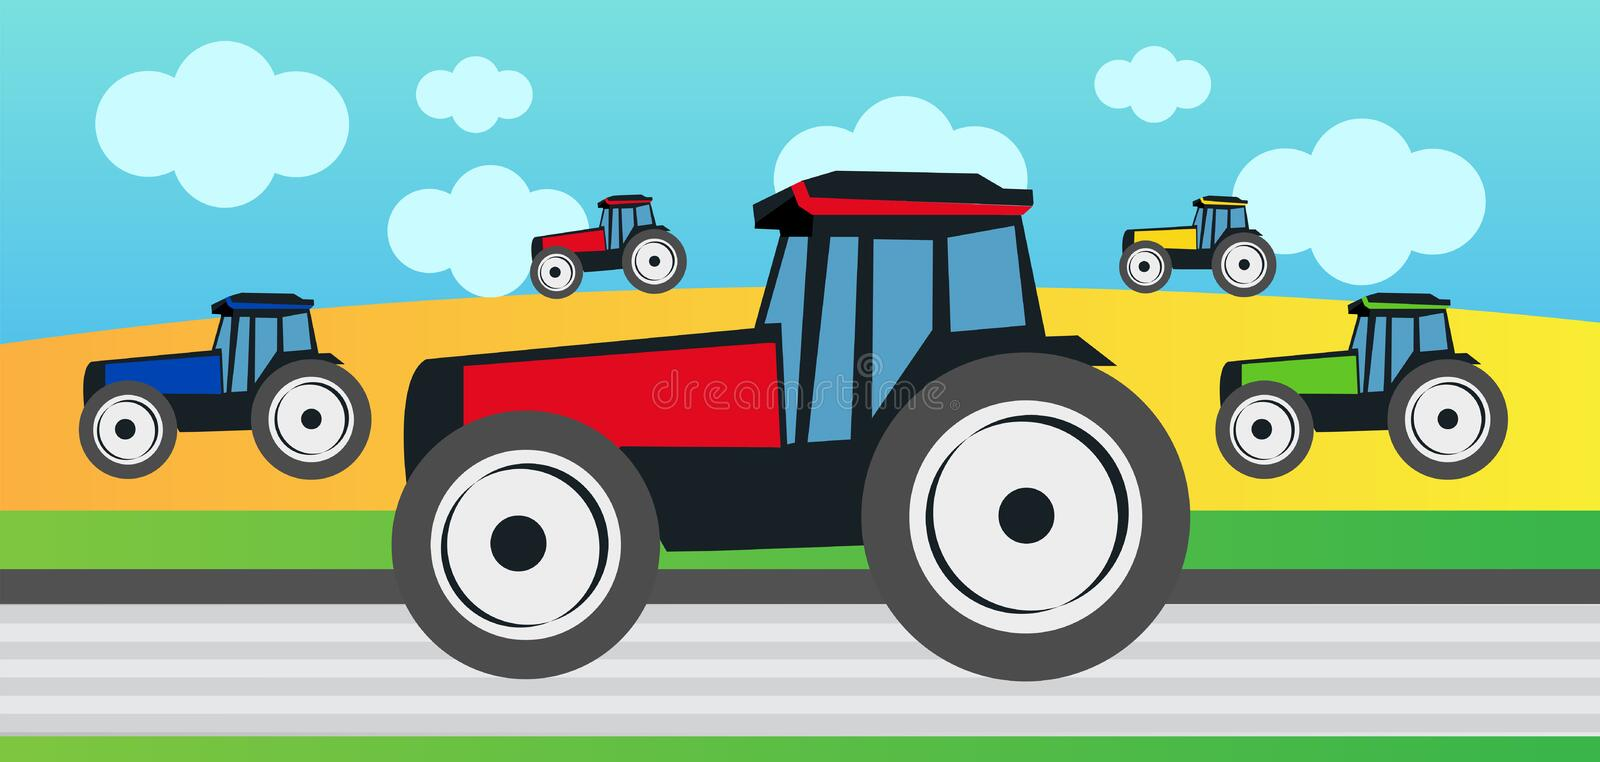 Harvest and many tractors stock illustration